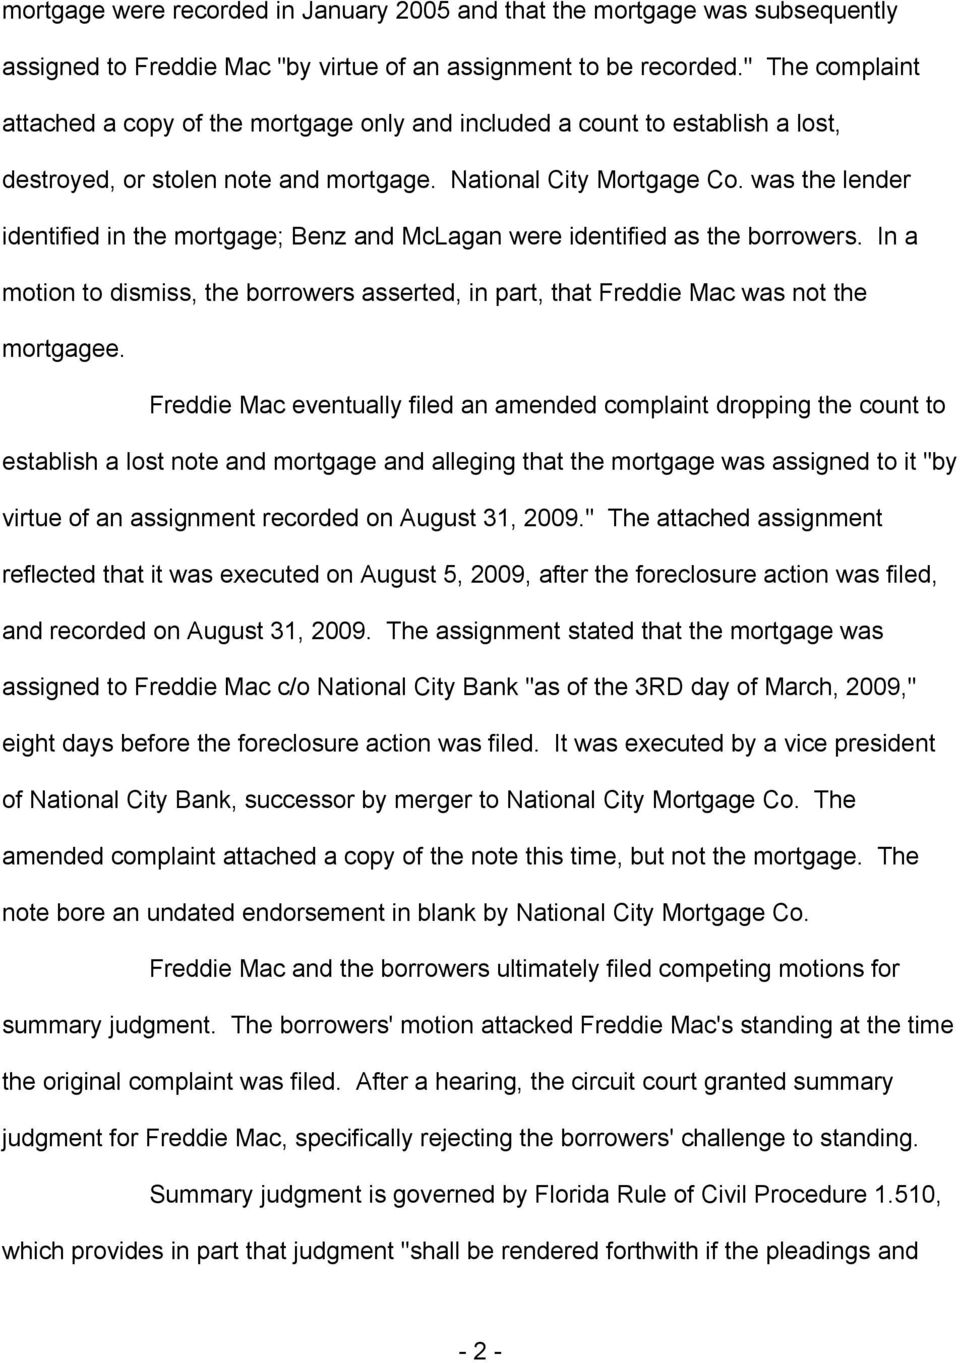 was the lender identified in the mortgage; Benz and McLagan were identified as the borrowers. In a motion to dismiss, the borrowers asserted, in part, that Freddie Mac was not the mortgagee.